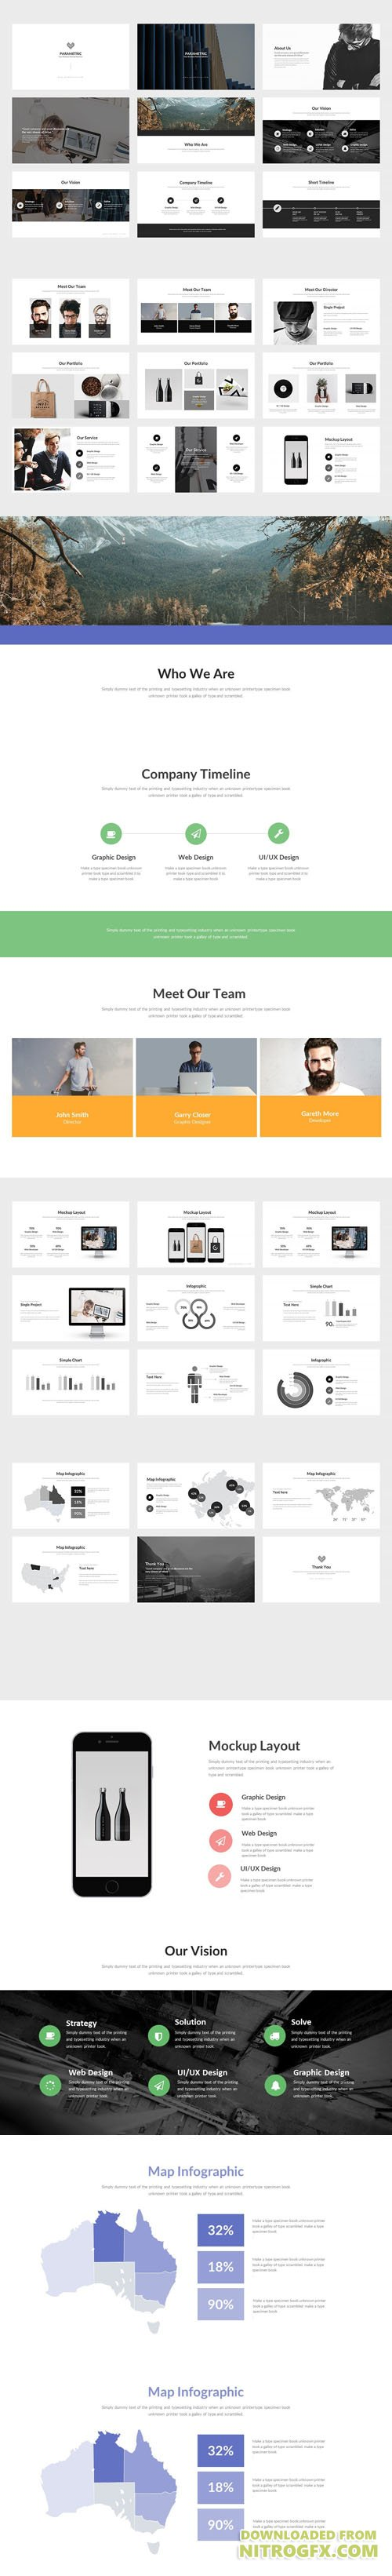 Parametric Powerpoint Presentation